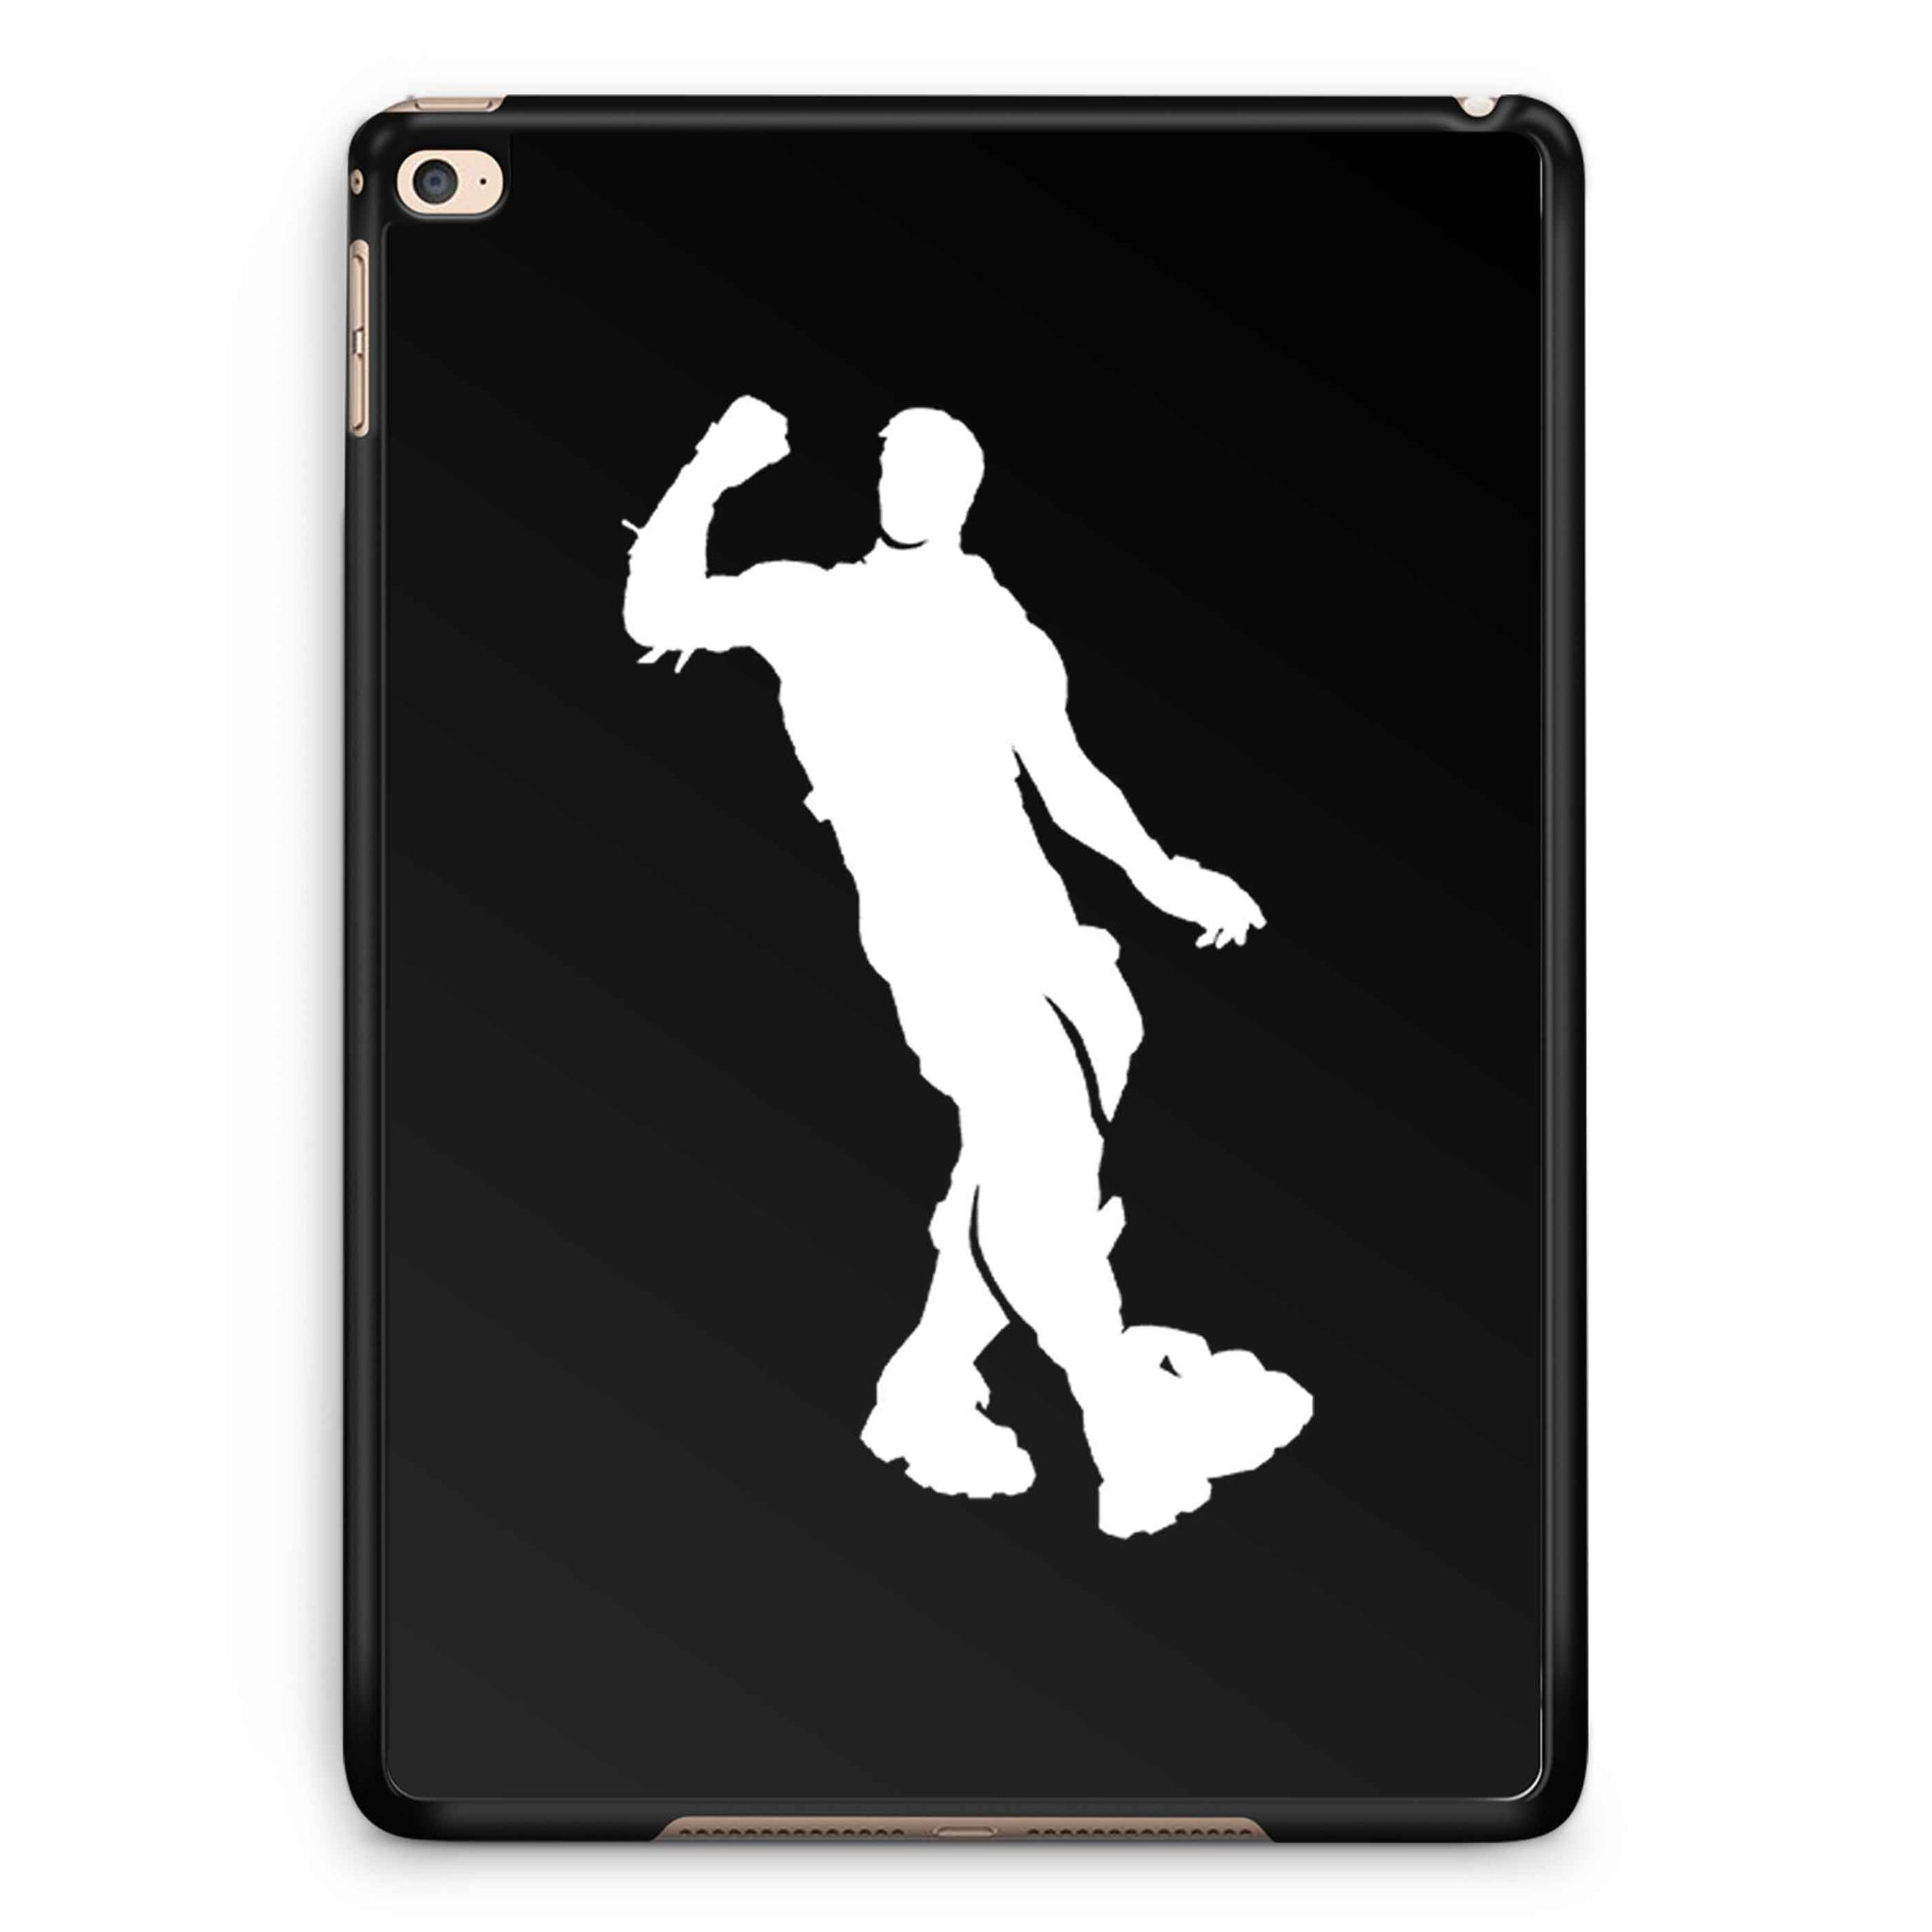 Fortnite Dance Icon iPad 2 / 3 / 4 / 5 / 6| iPad Air / Air 2 | iPad Mini 1 / 2 / 3 / 4 | iPad Pro Case